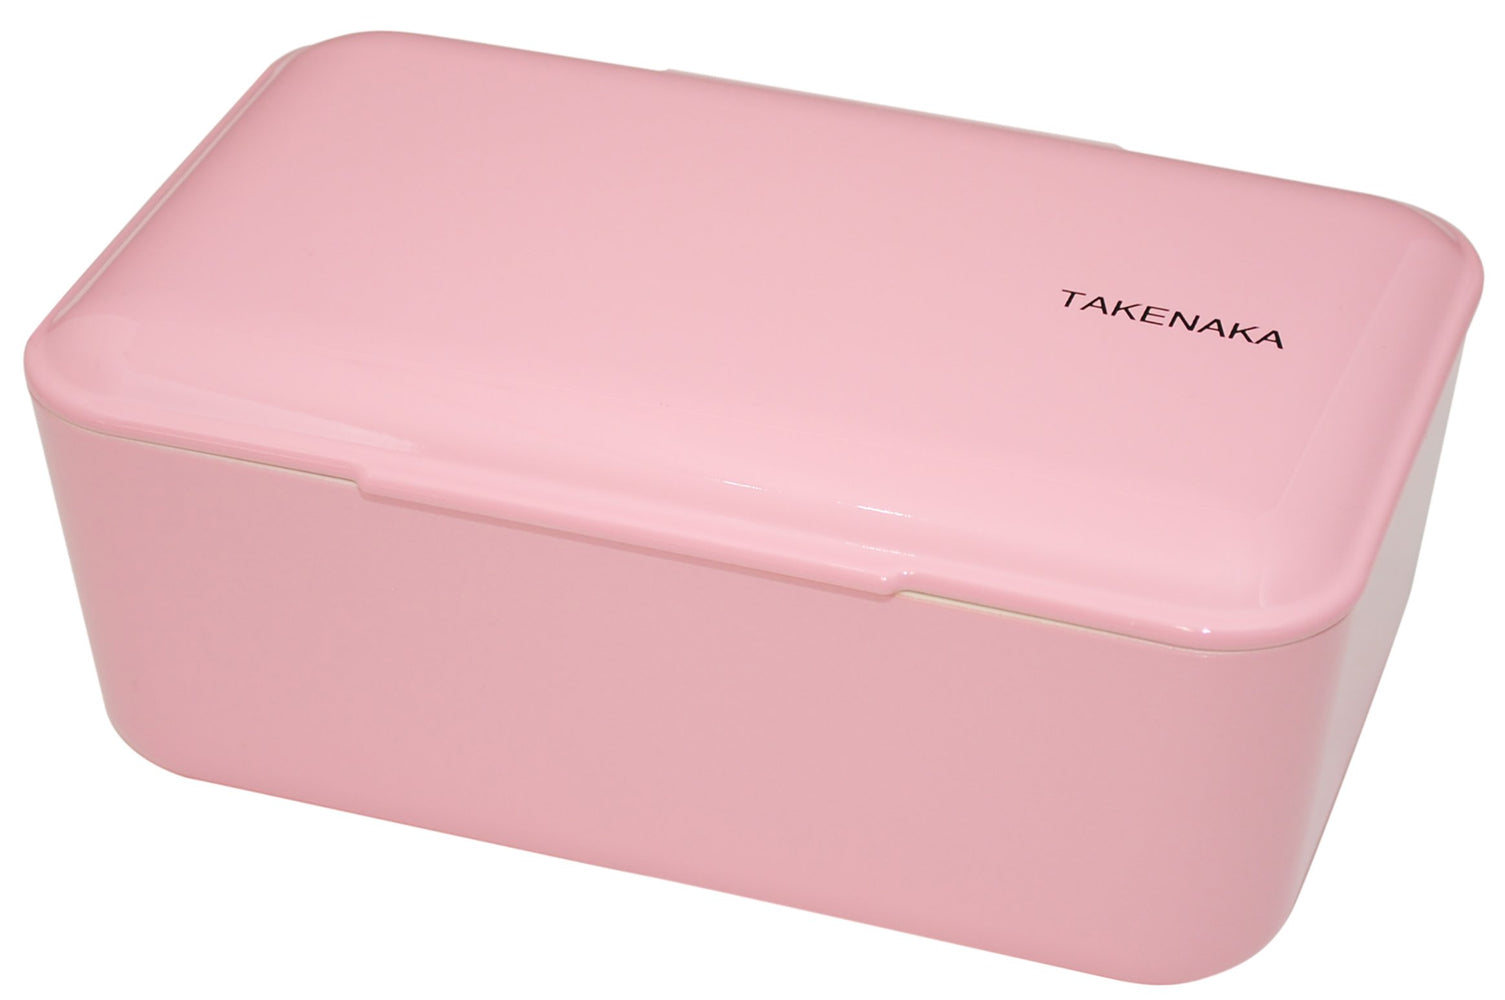 Expanded Bento Box | Candy Pink by Takenaka - Bento&con the Bento Boxes specialist from Kyoto